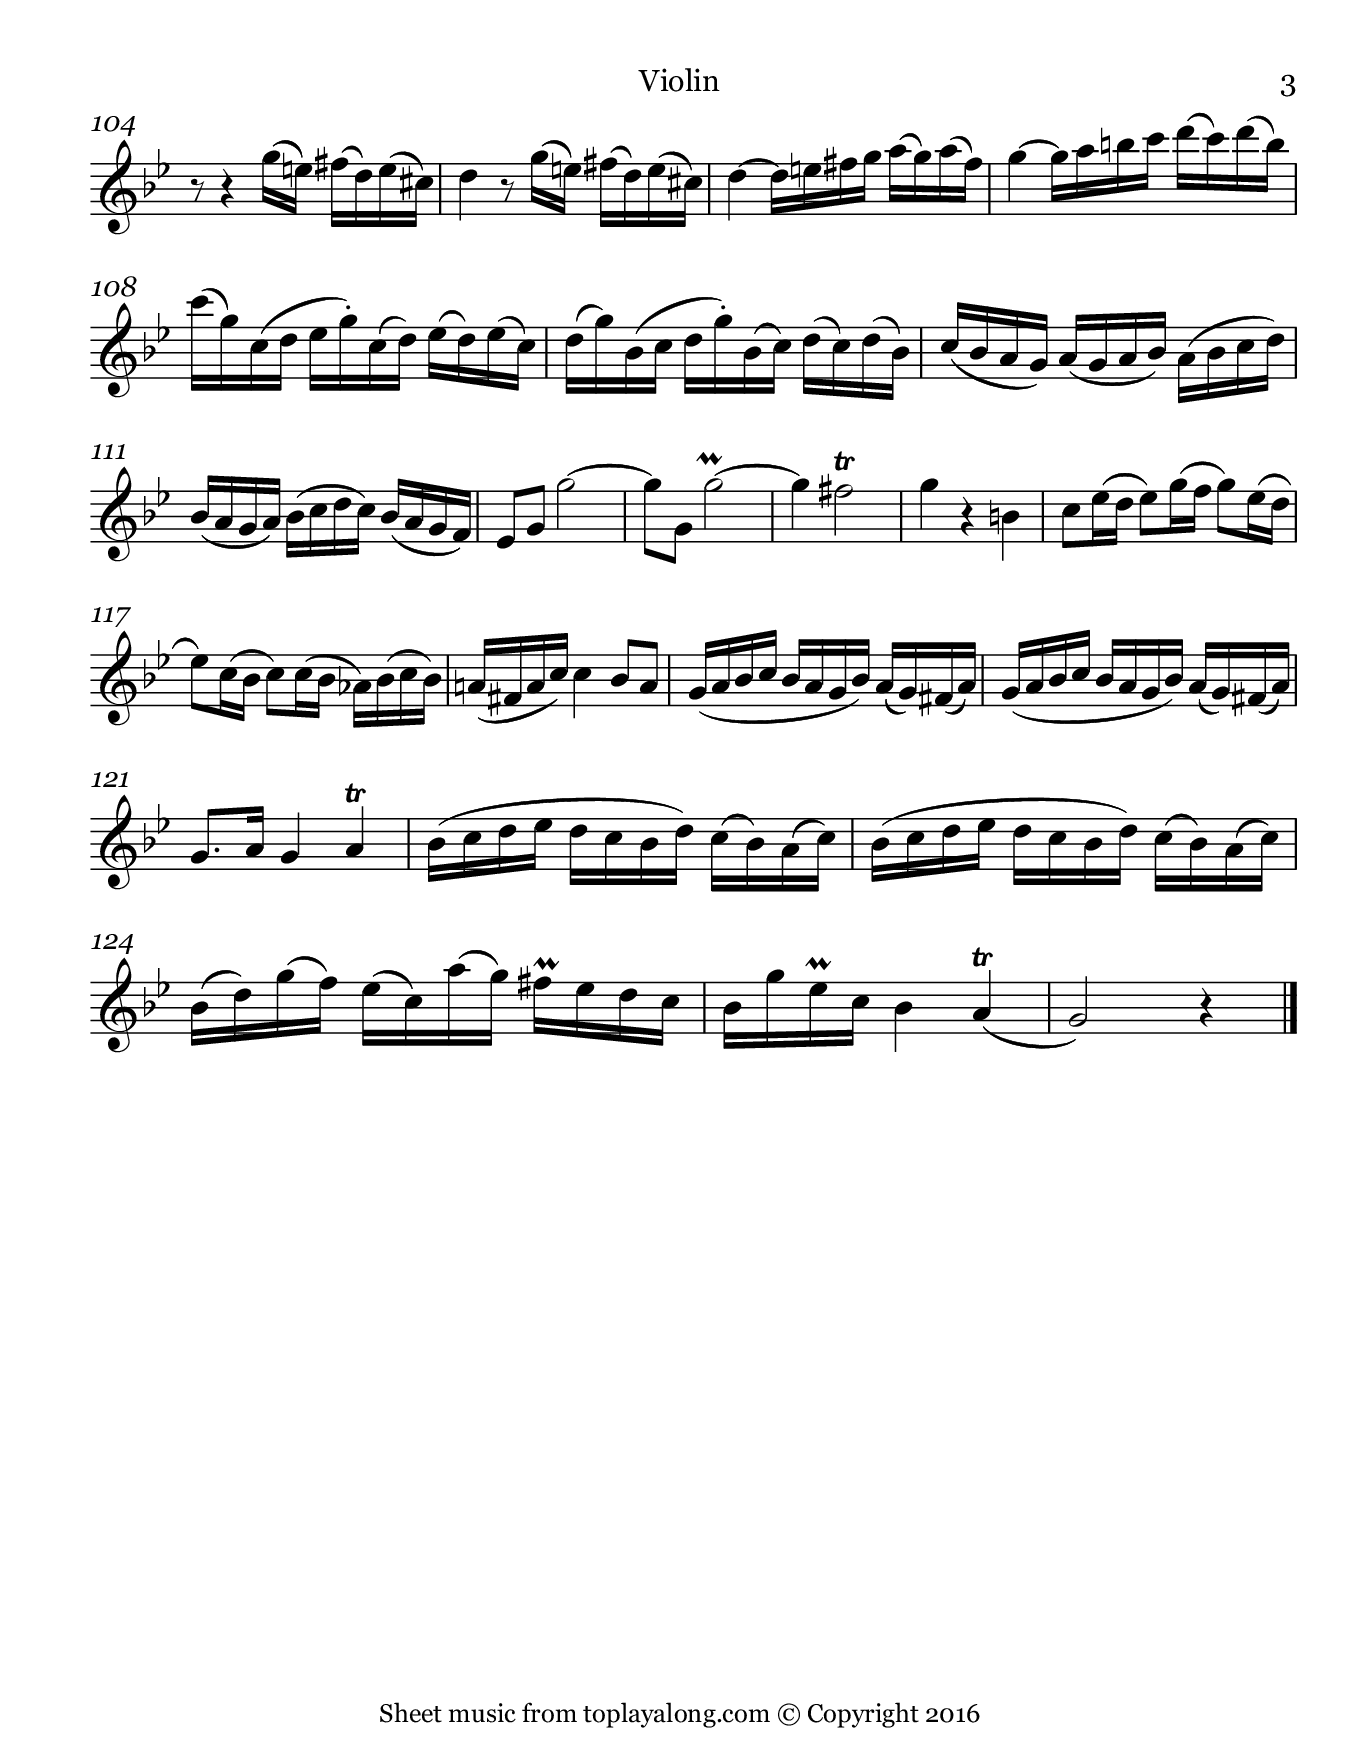 Sonata in G minor BWV 1020 (I. Allegro) by J. S. Bach. Sheet music for Violin, page 3.